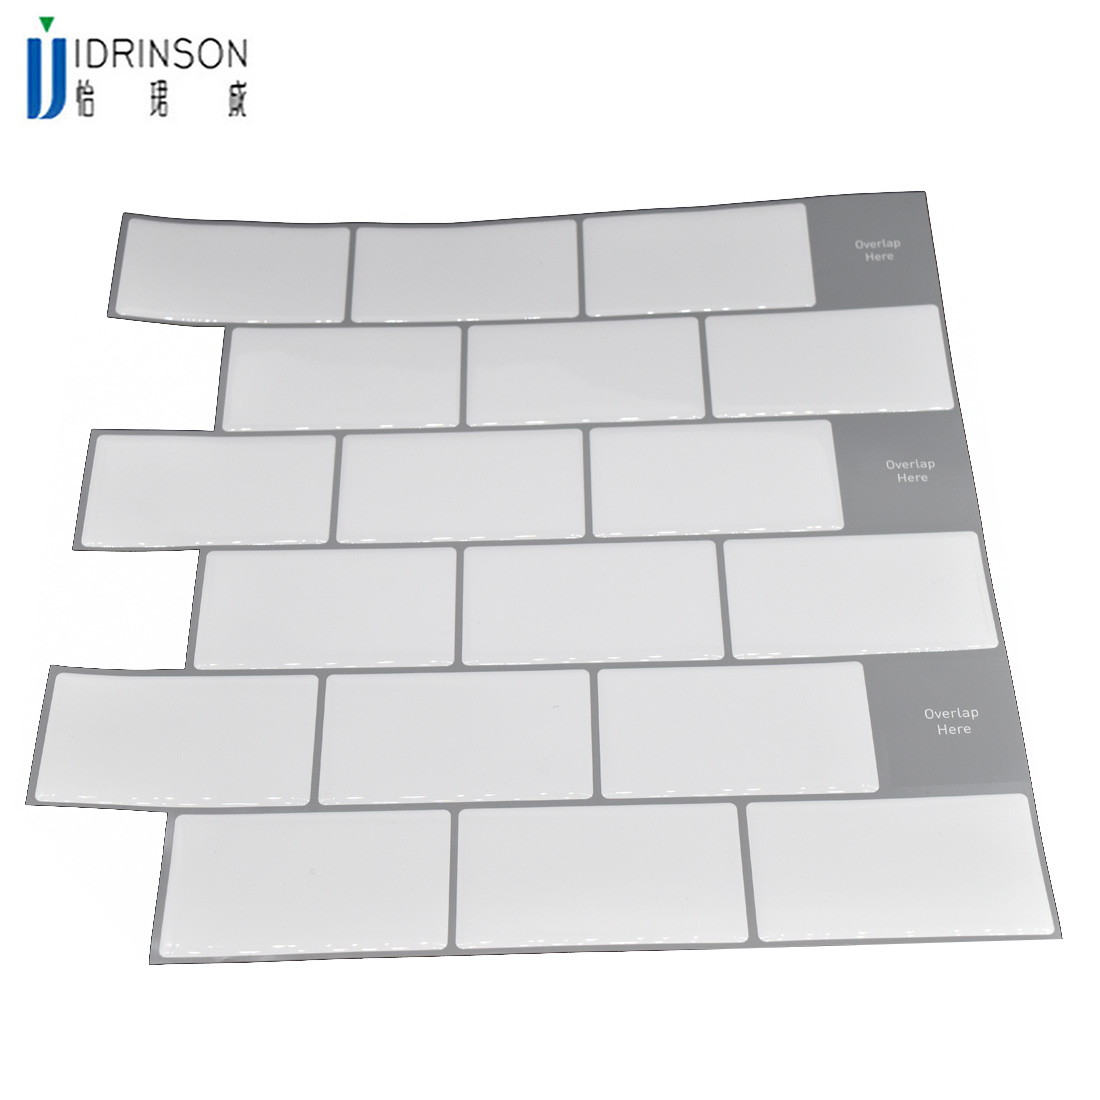 . US  2 28 66  OFF White large anti tiles self adhesive 3D wallpaper DIY  kitchen bathroom decorative wall tiles white subway in Wall Stickers from  Home